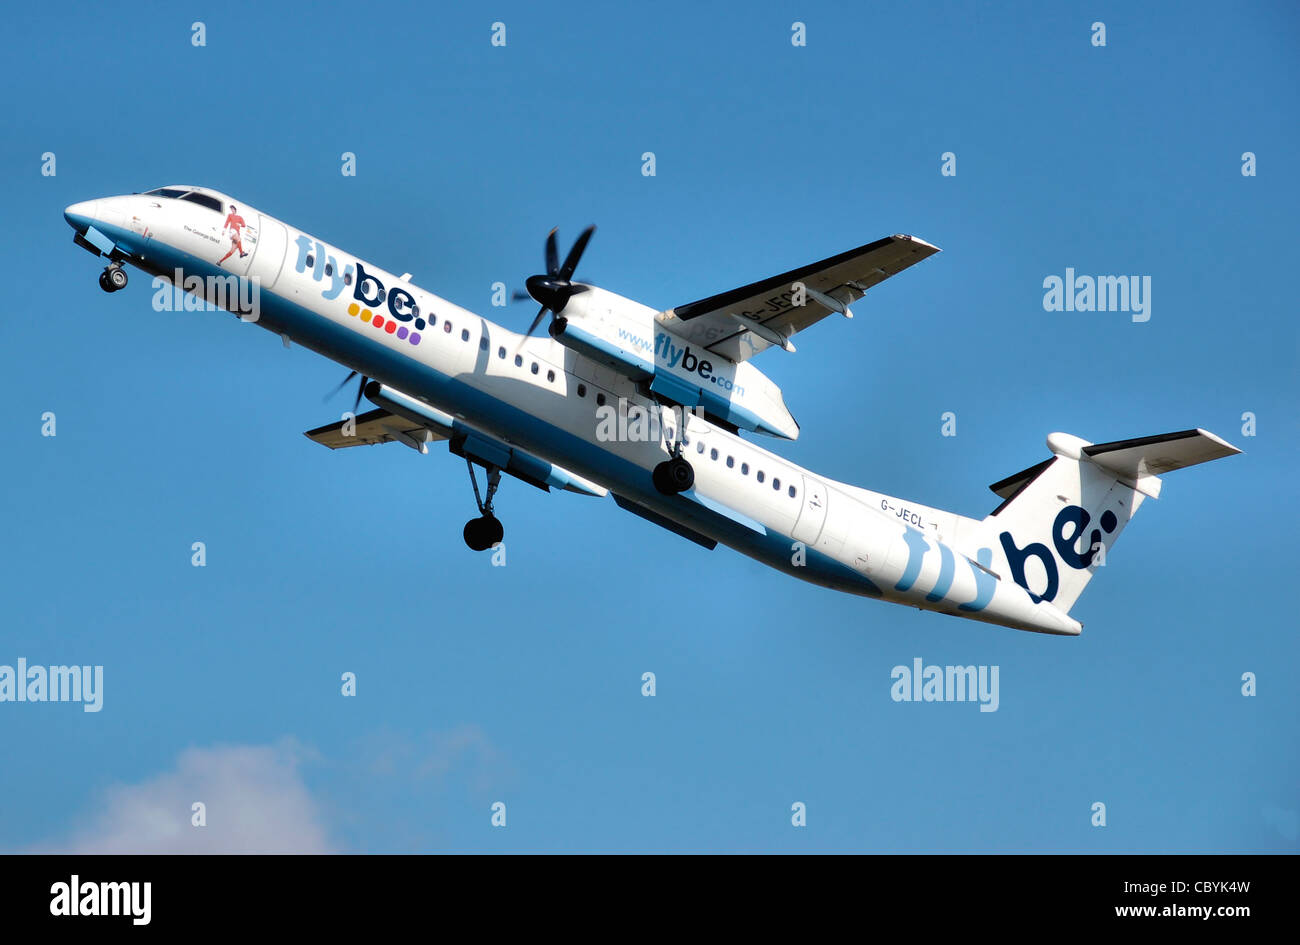 Flybe Bombardier Dash-8-400 (G-JECL) takes off from Manchester Airport, England. - Stock Image